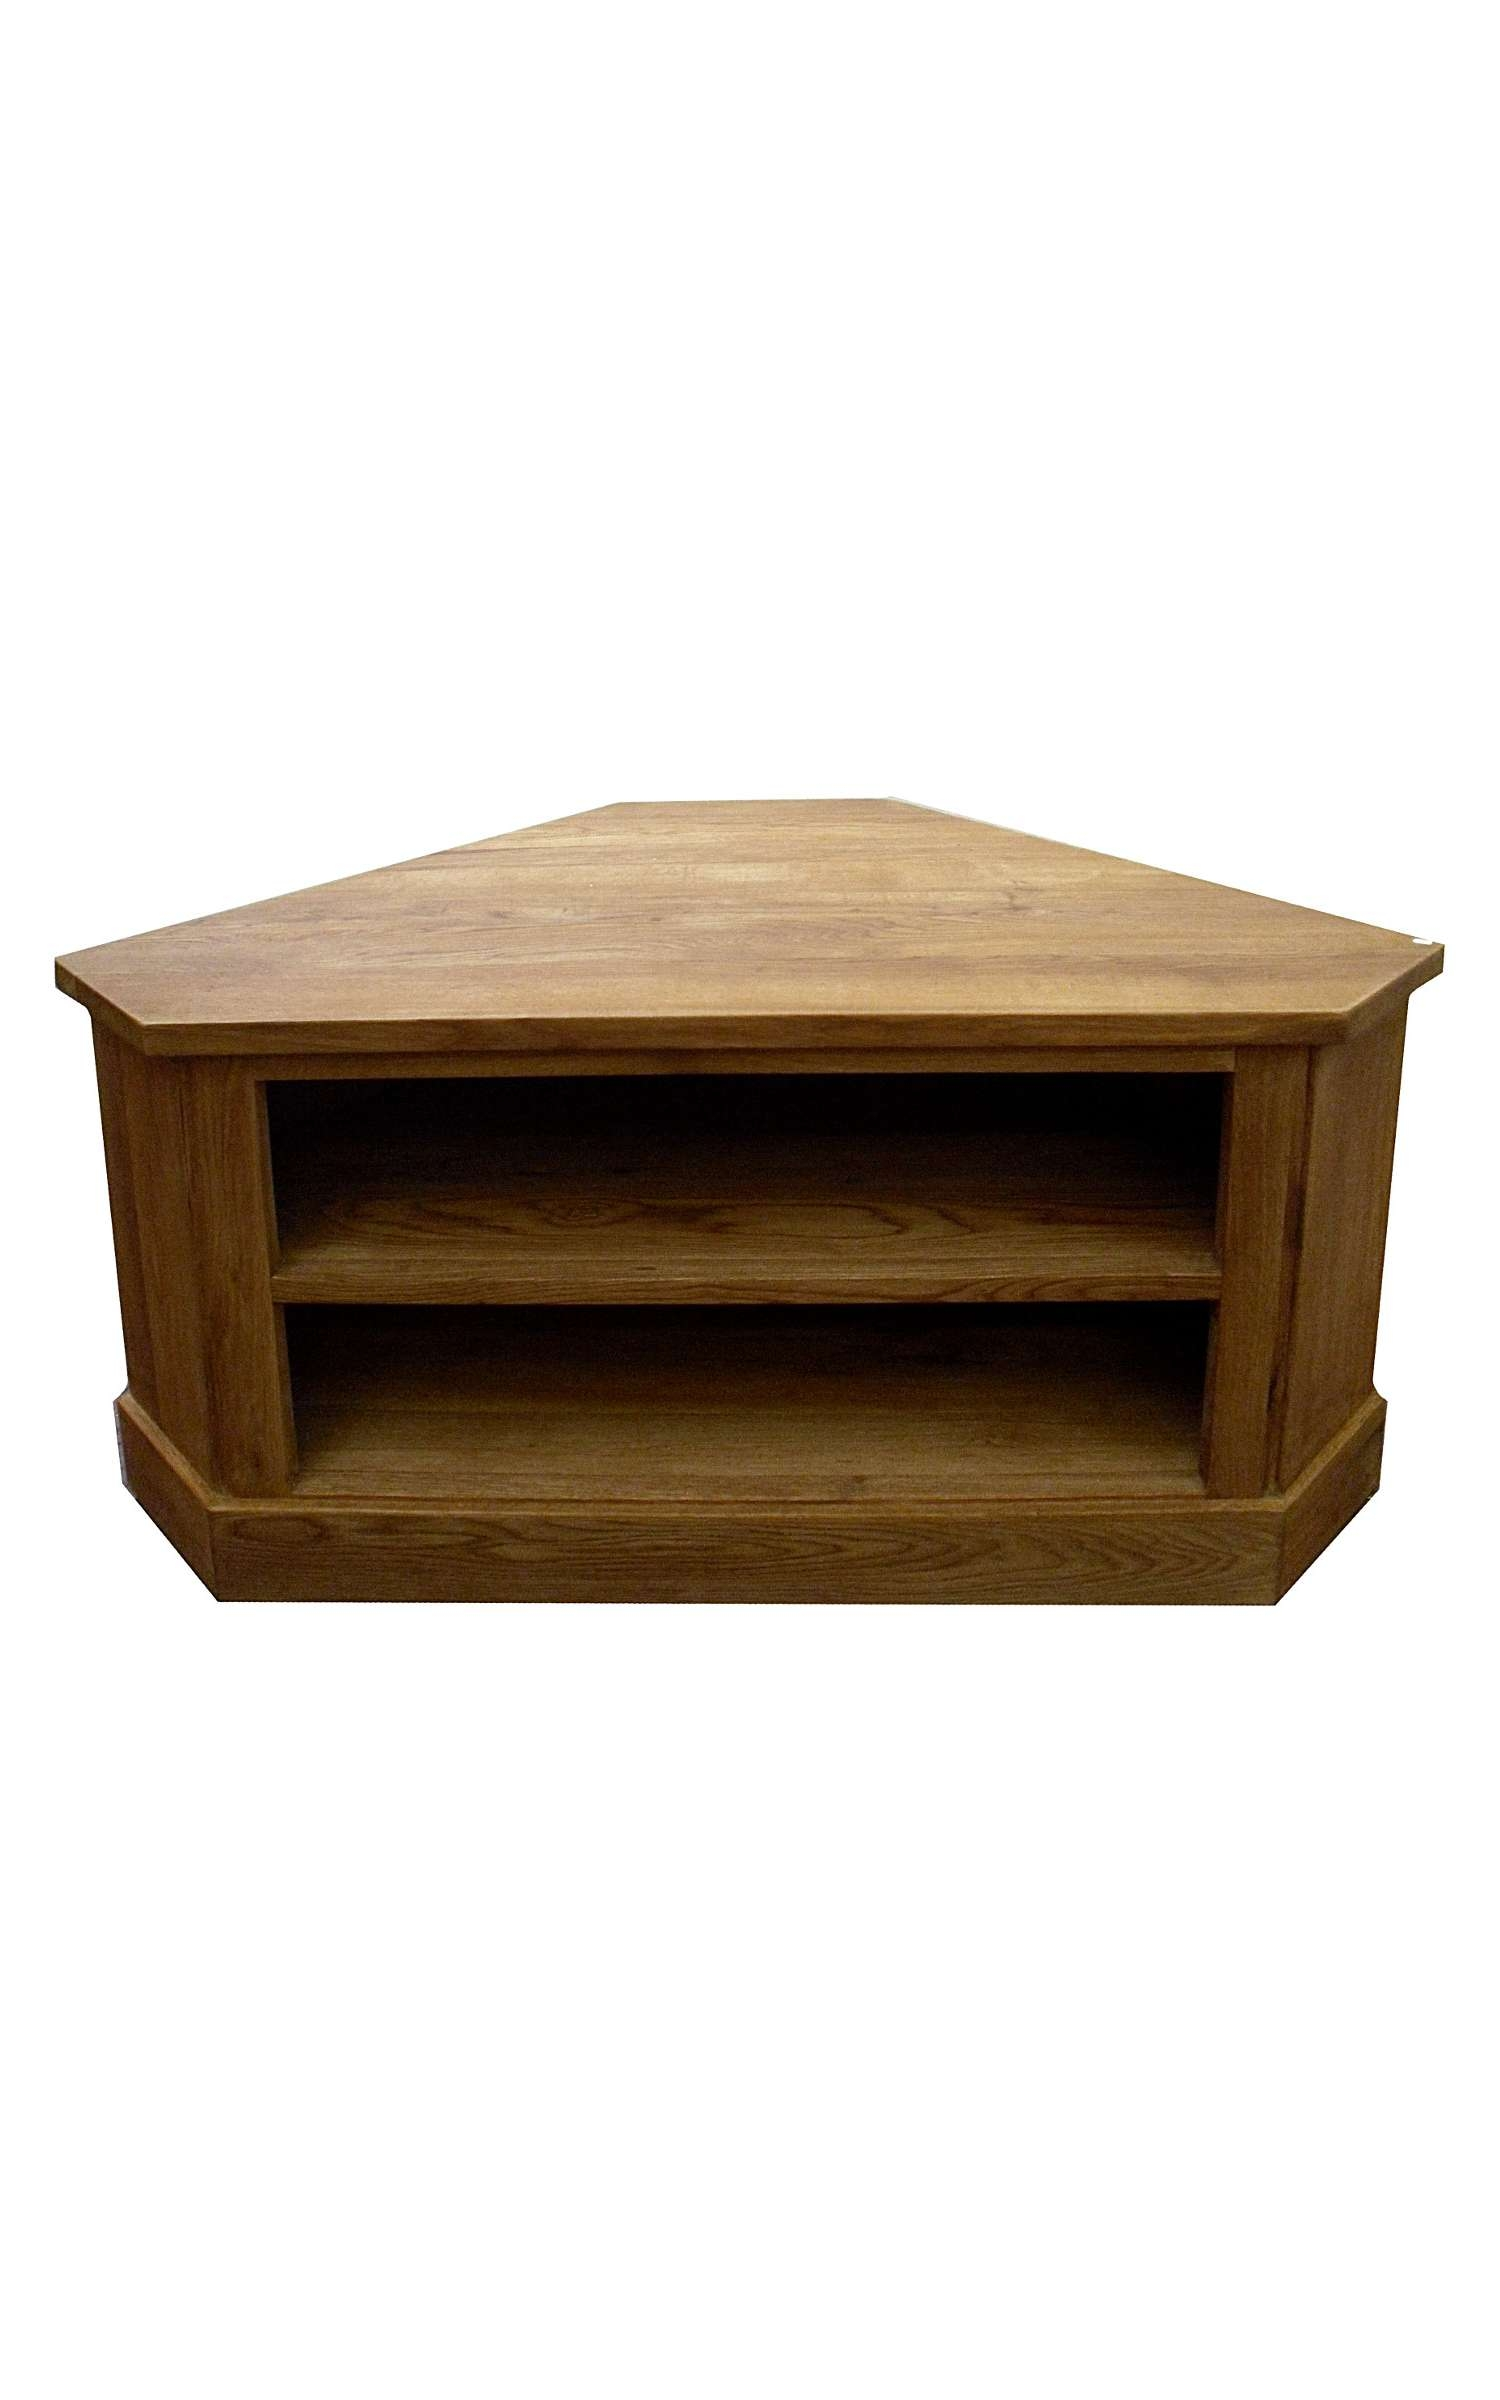 Small Wooden Corner Tv Stand Console Cabinet With Fireplace And Inside Small Corner Tv Cabinets (View 18 of 20)